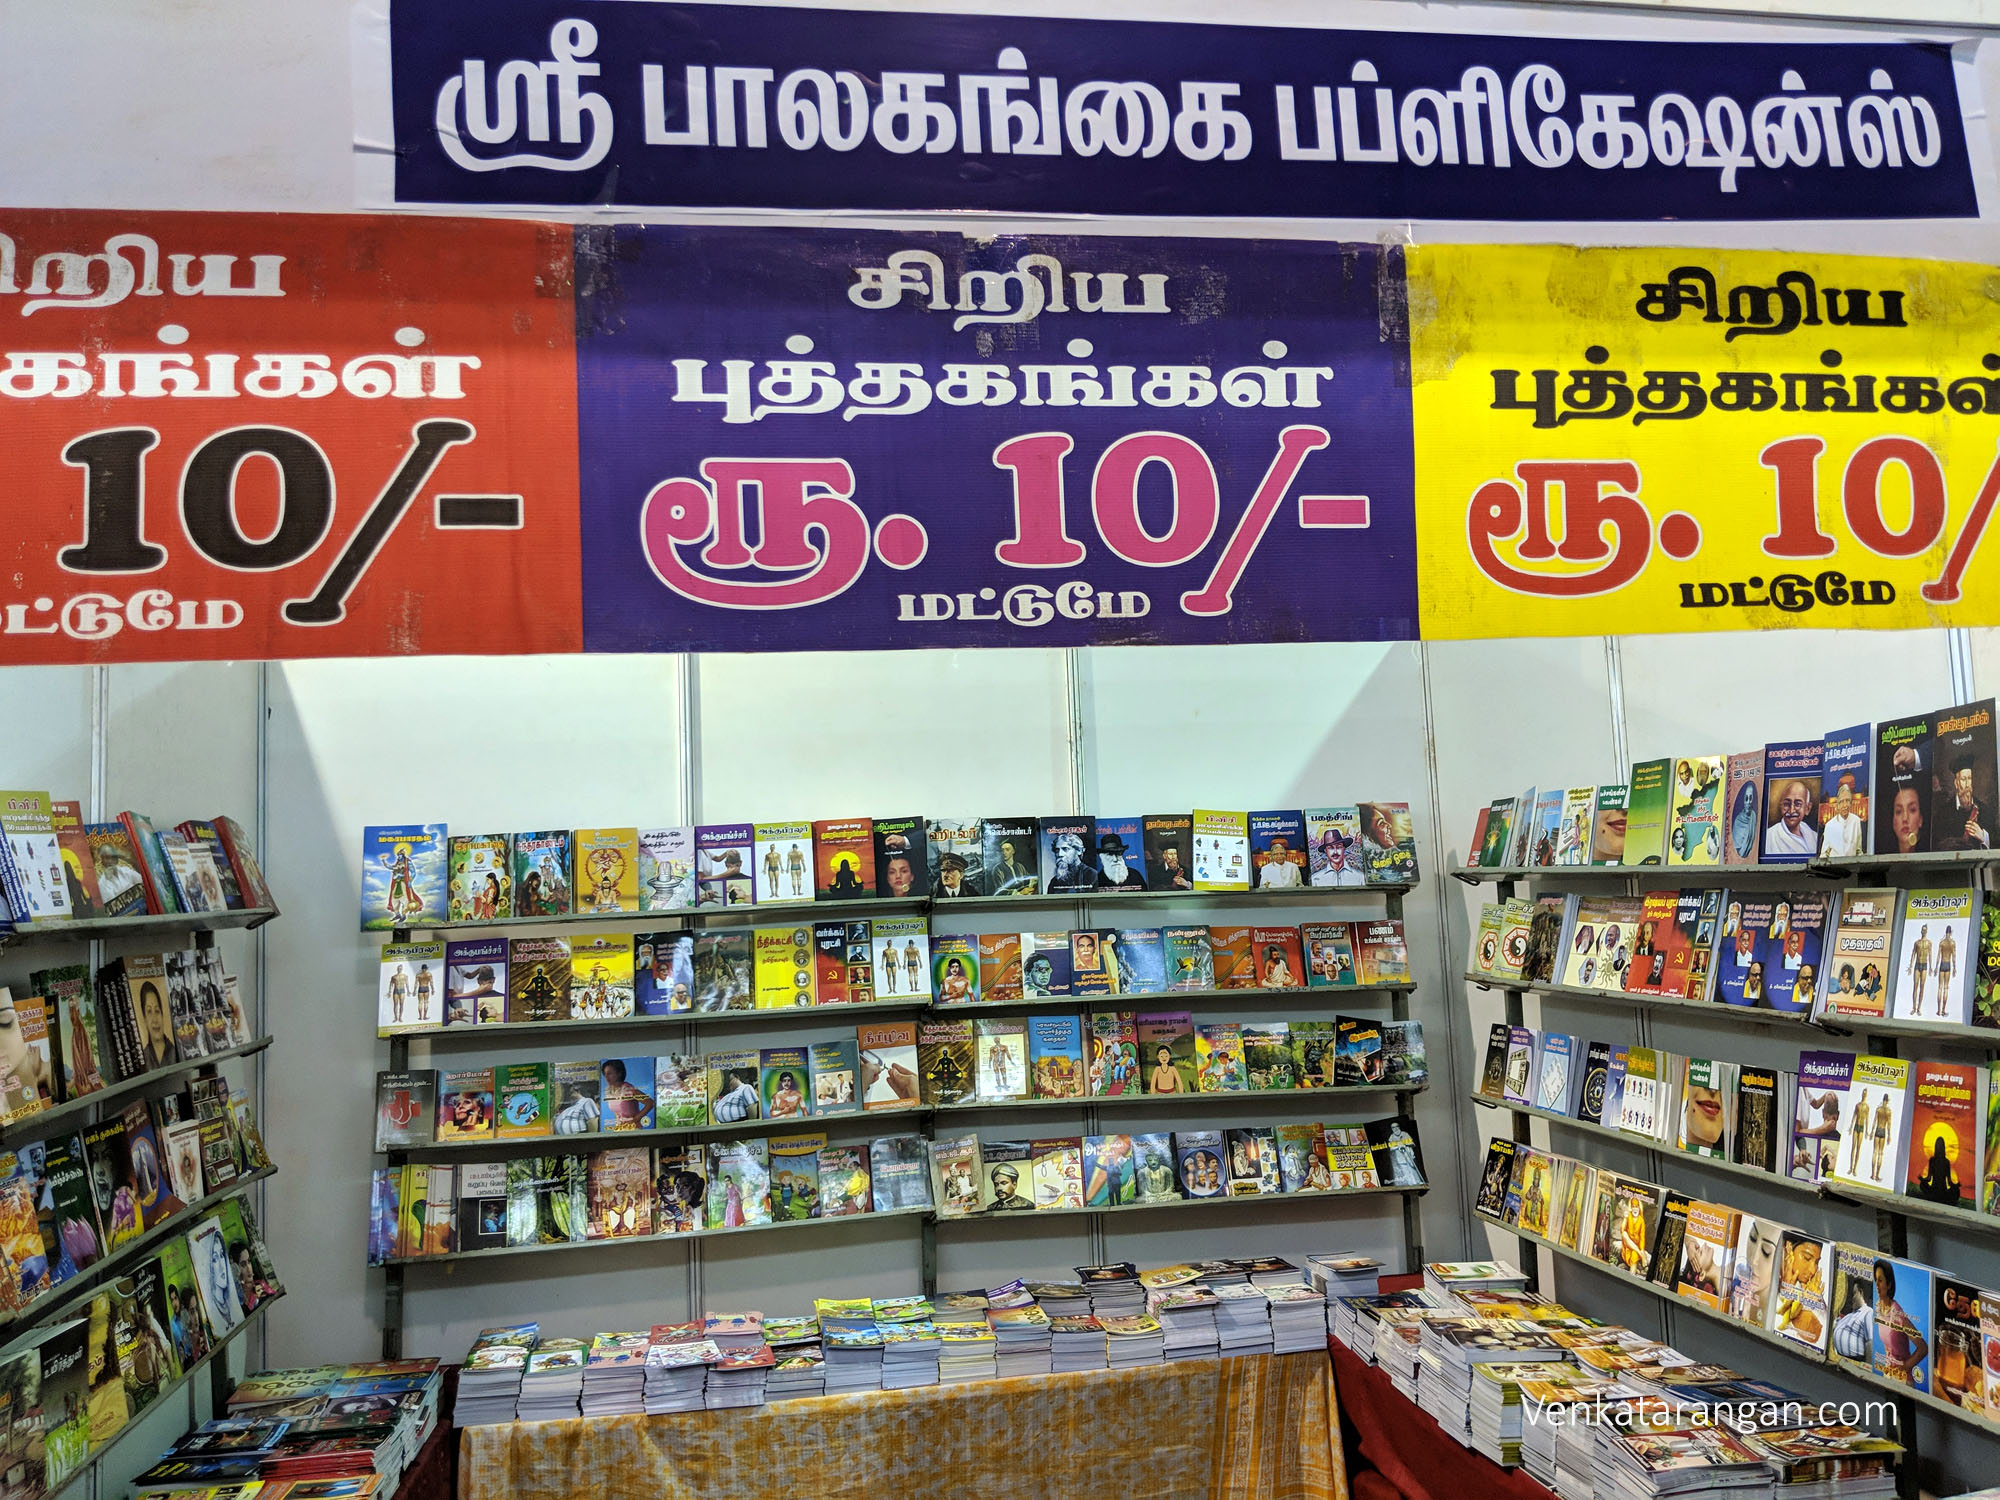 Surprised, to find books for as low as ₹10 - சிறிய புத்தகங்கள் ₹10 மட்டுமே